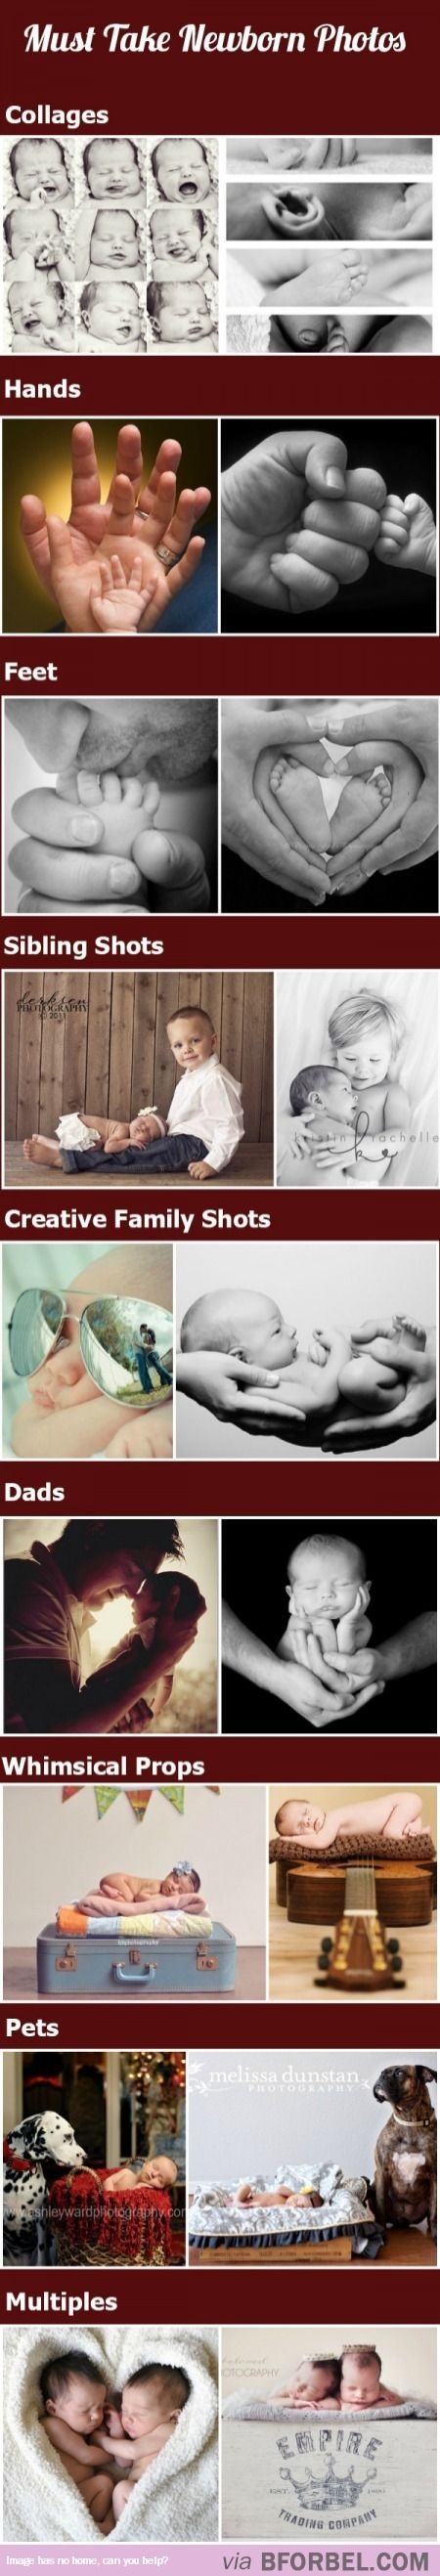 9 Must-Take Newborn Photos… Only thing missing is one with mommy!